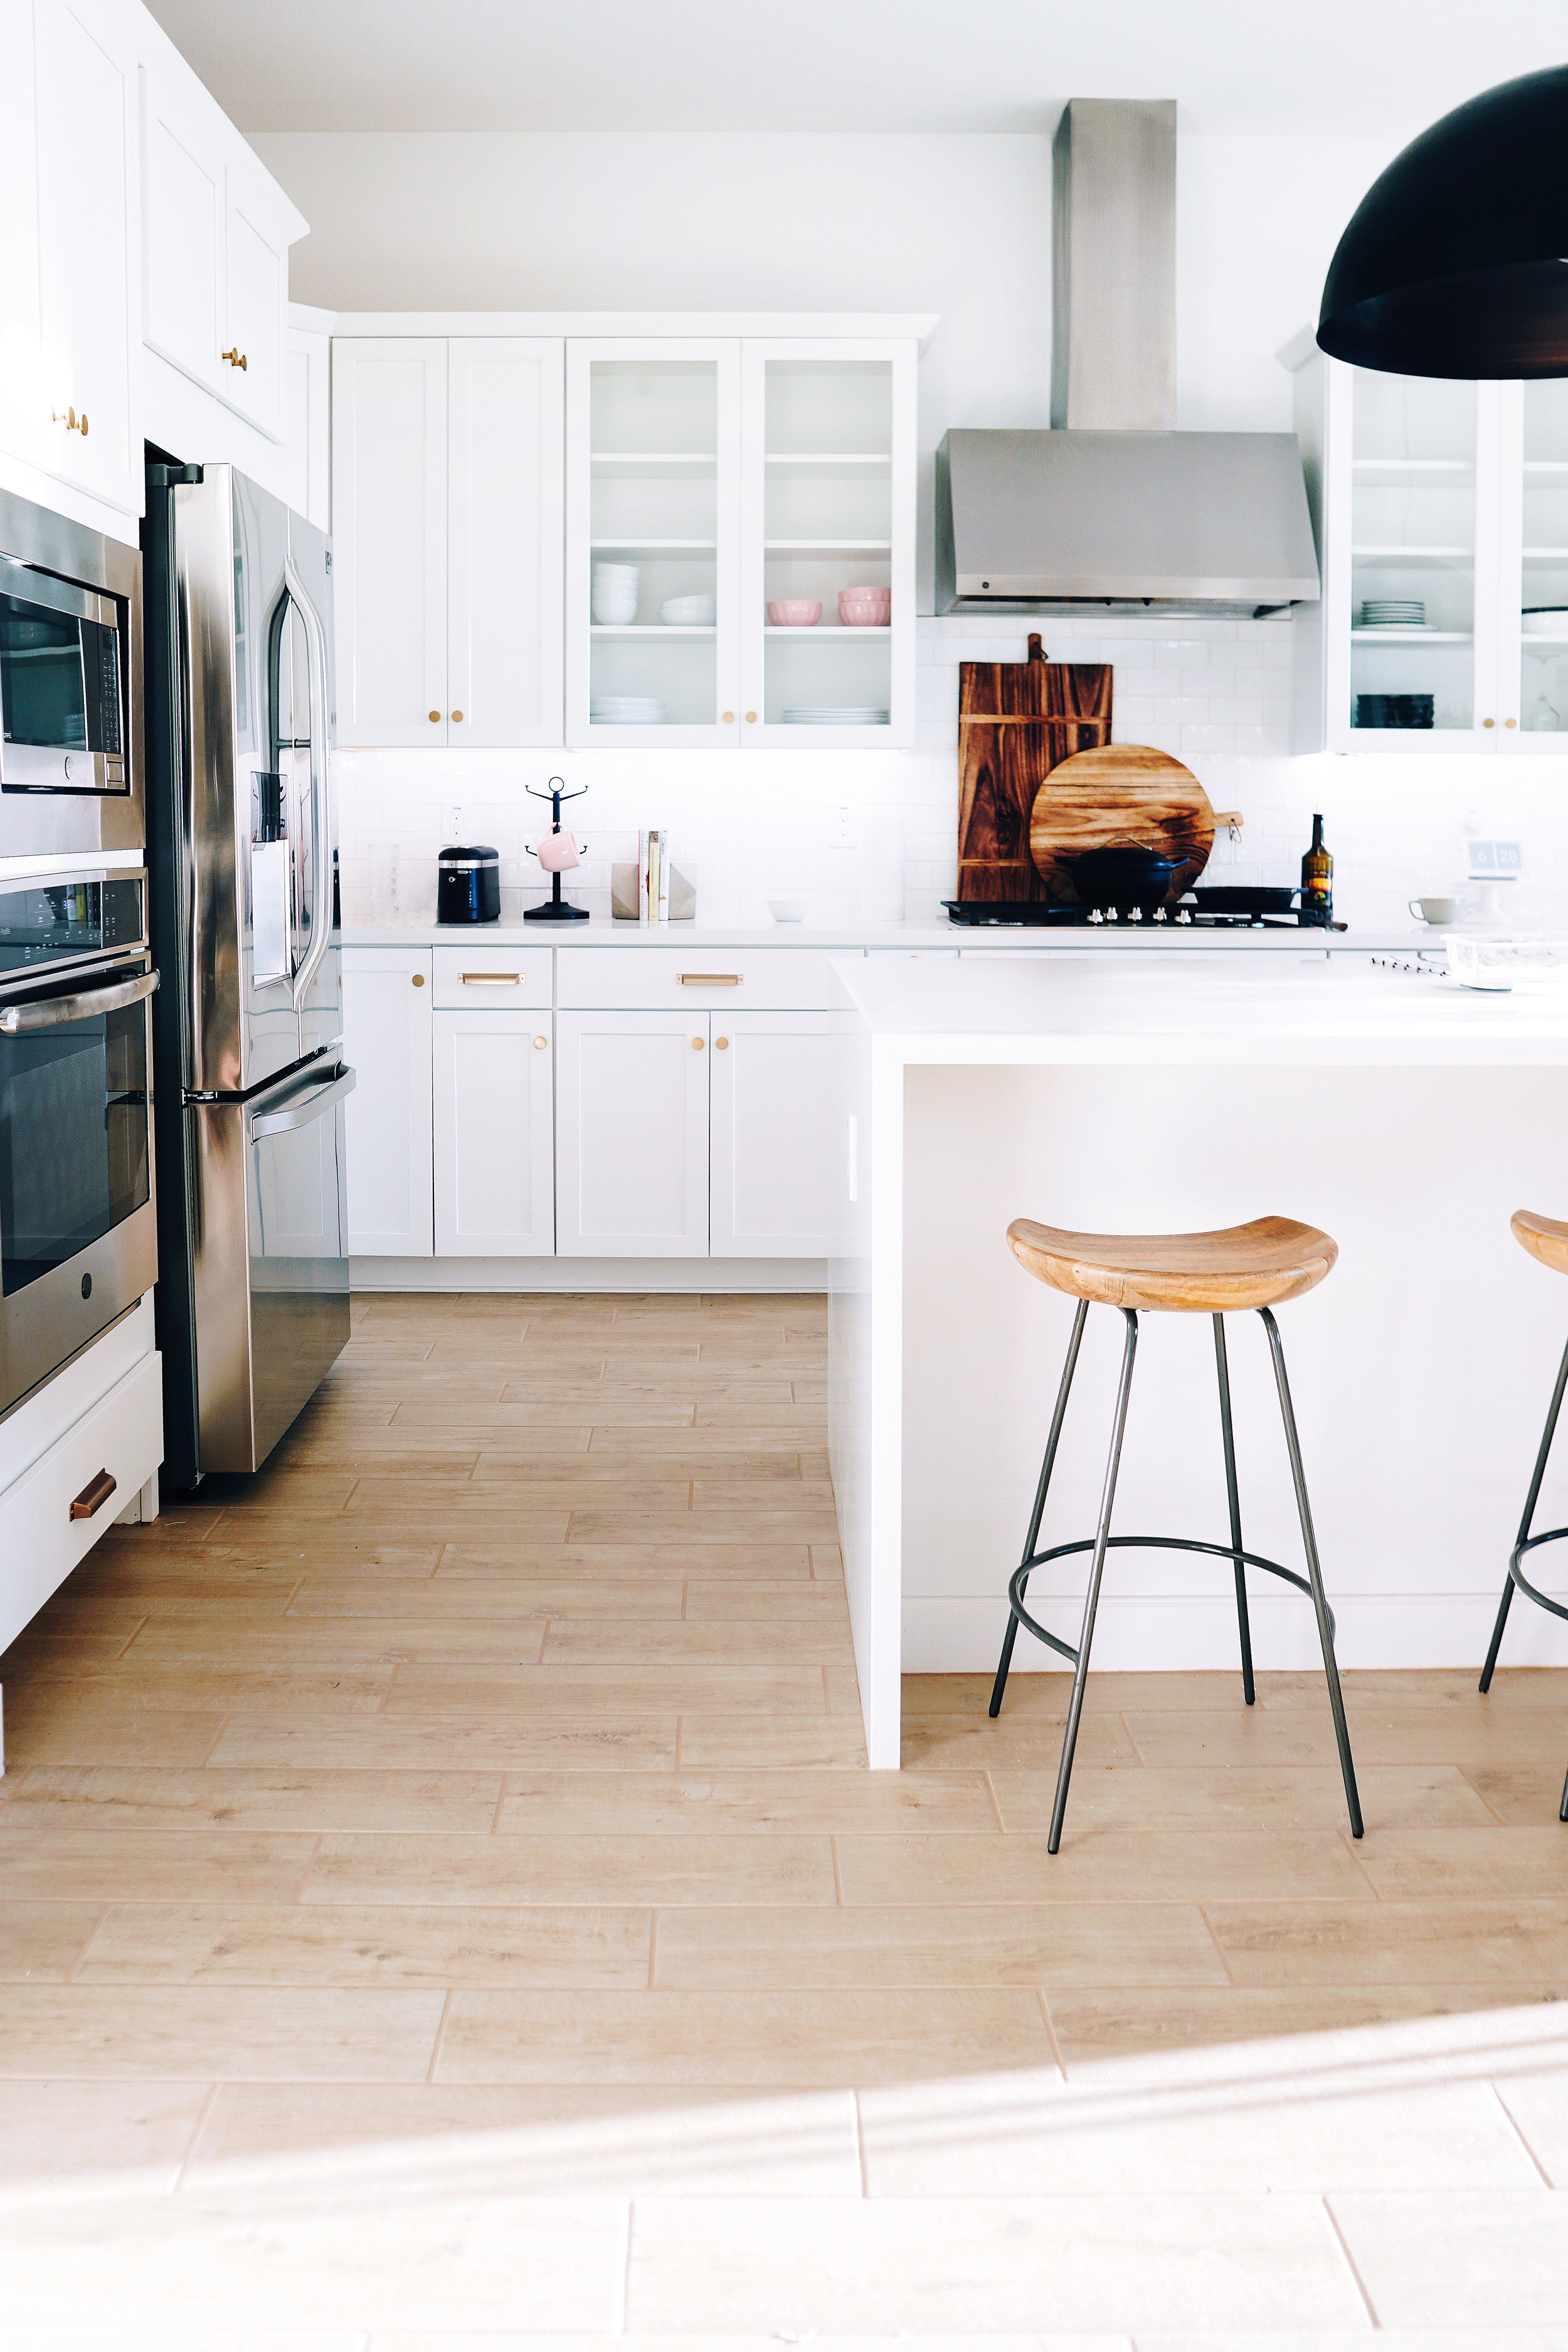 Home staging consultations can sell homes faster and bring in a higher selling price.